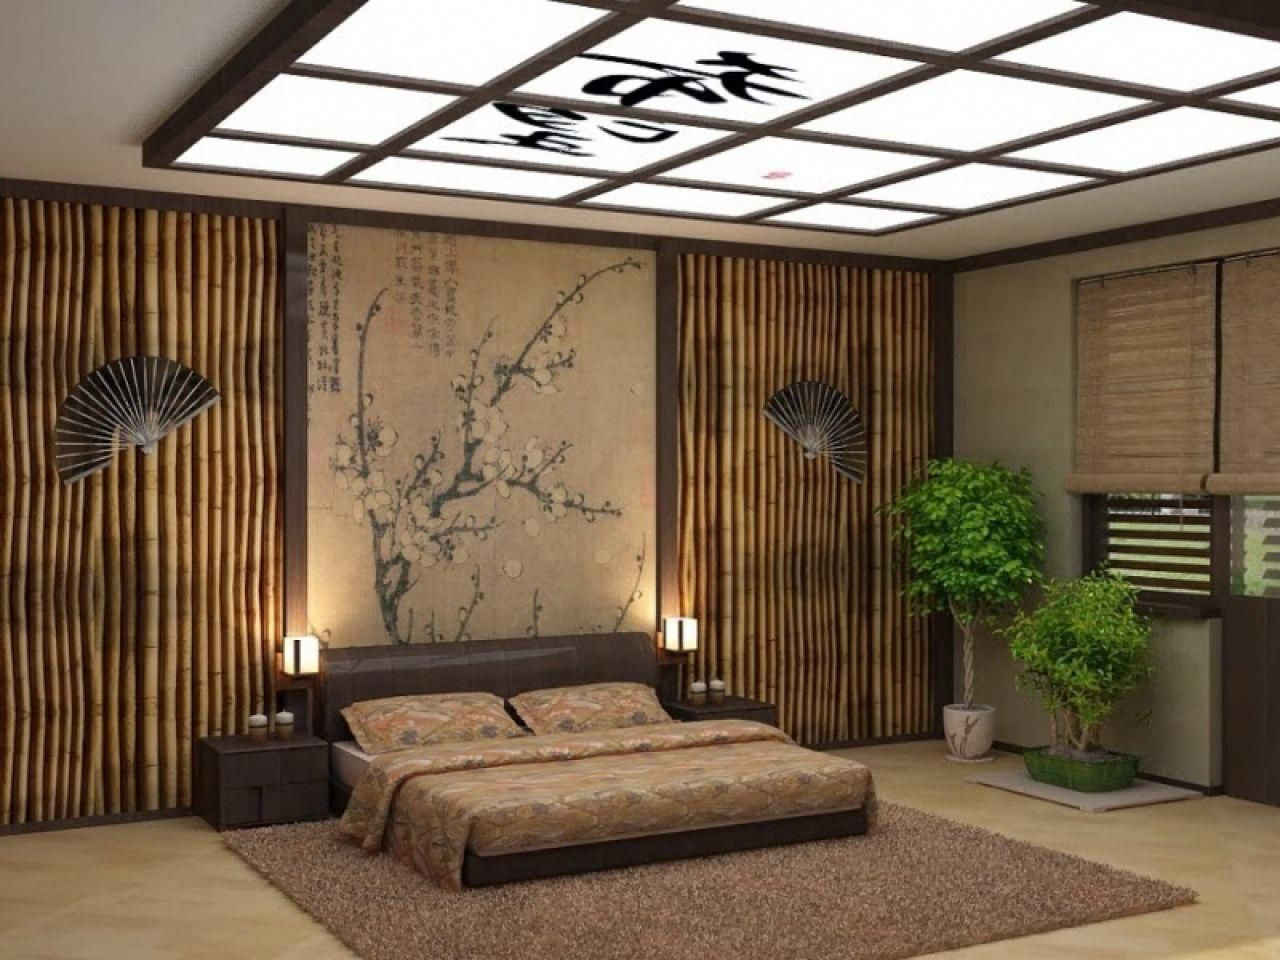 ASIAN-Style Interiors. Oriental Bedroom Design with Japanese